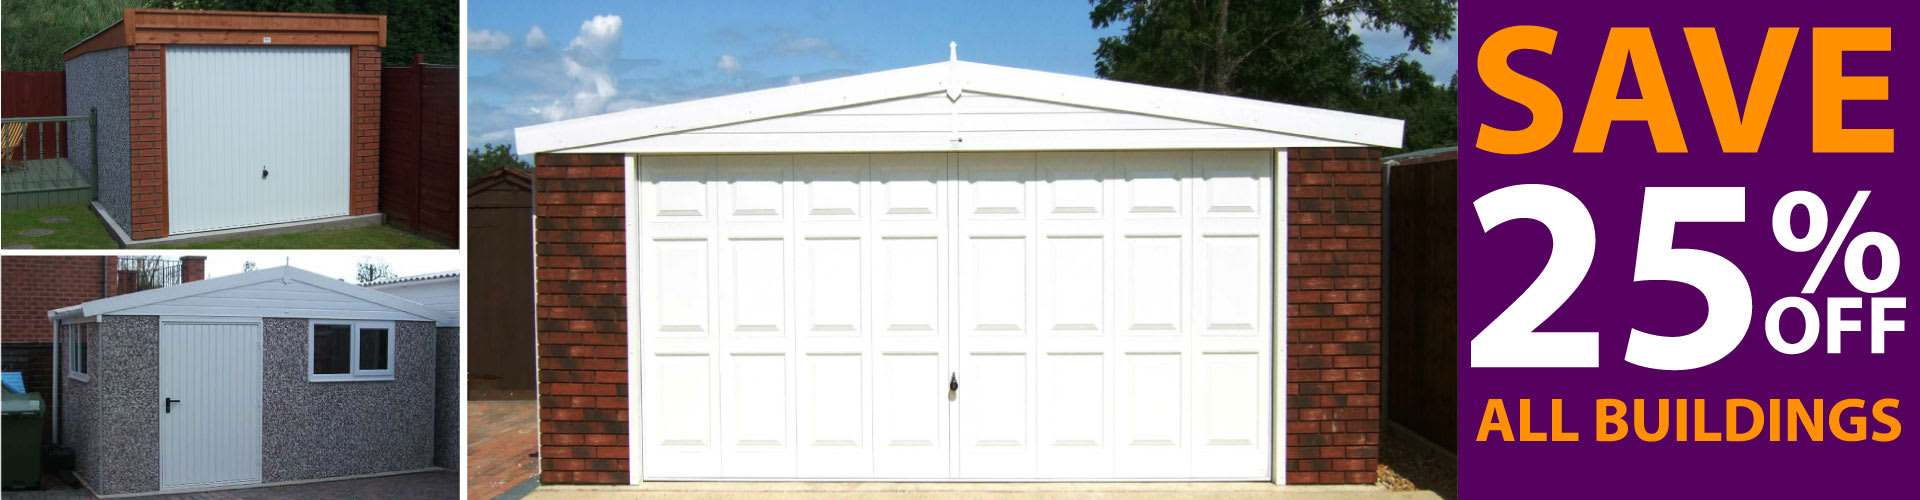 Concrete Garages